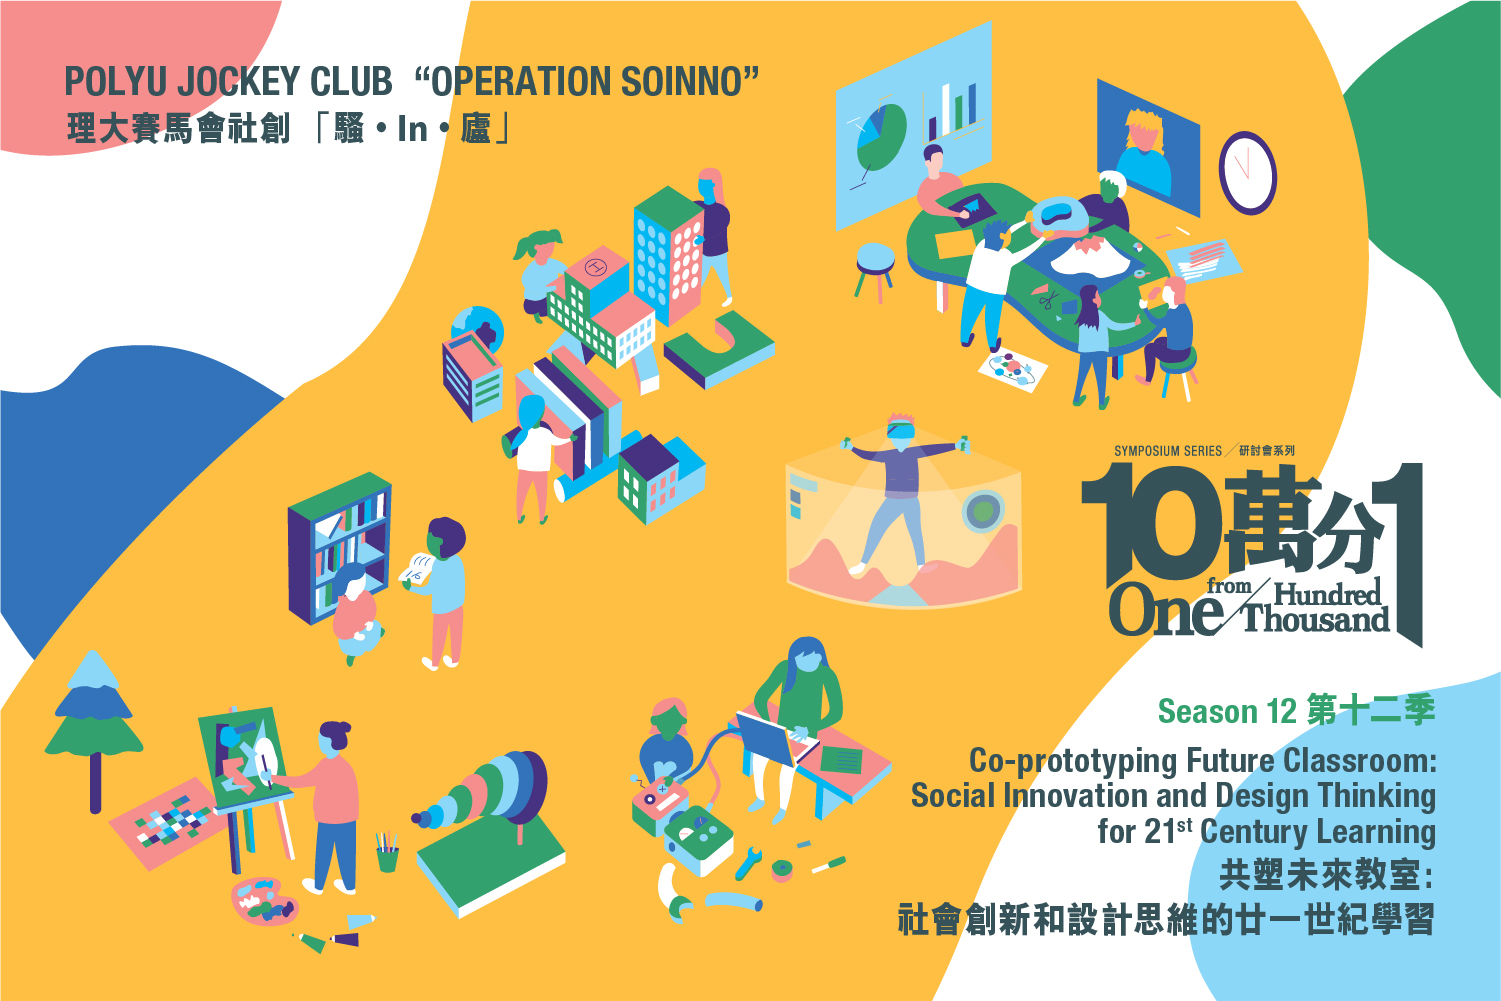 """Supporting Event - """"One from Hundred Thousand"""" Social Innovation Symposium 